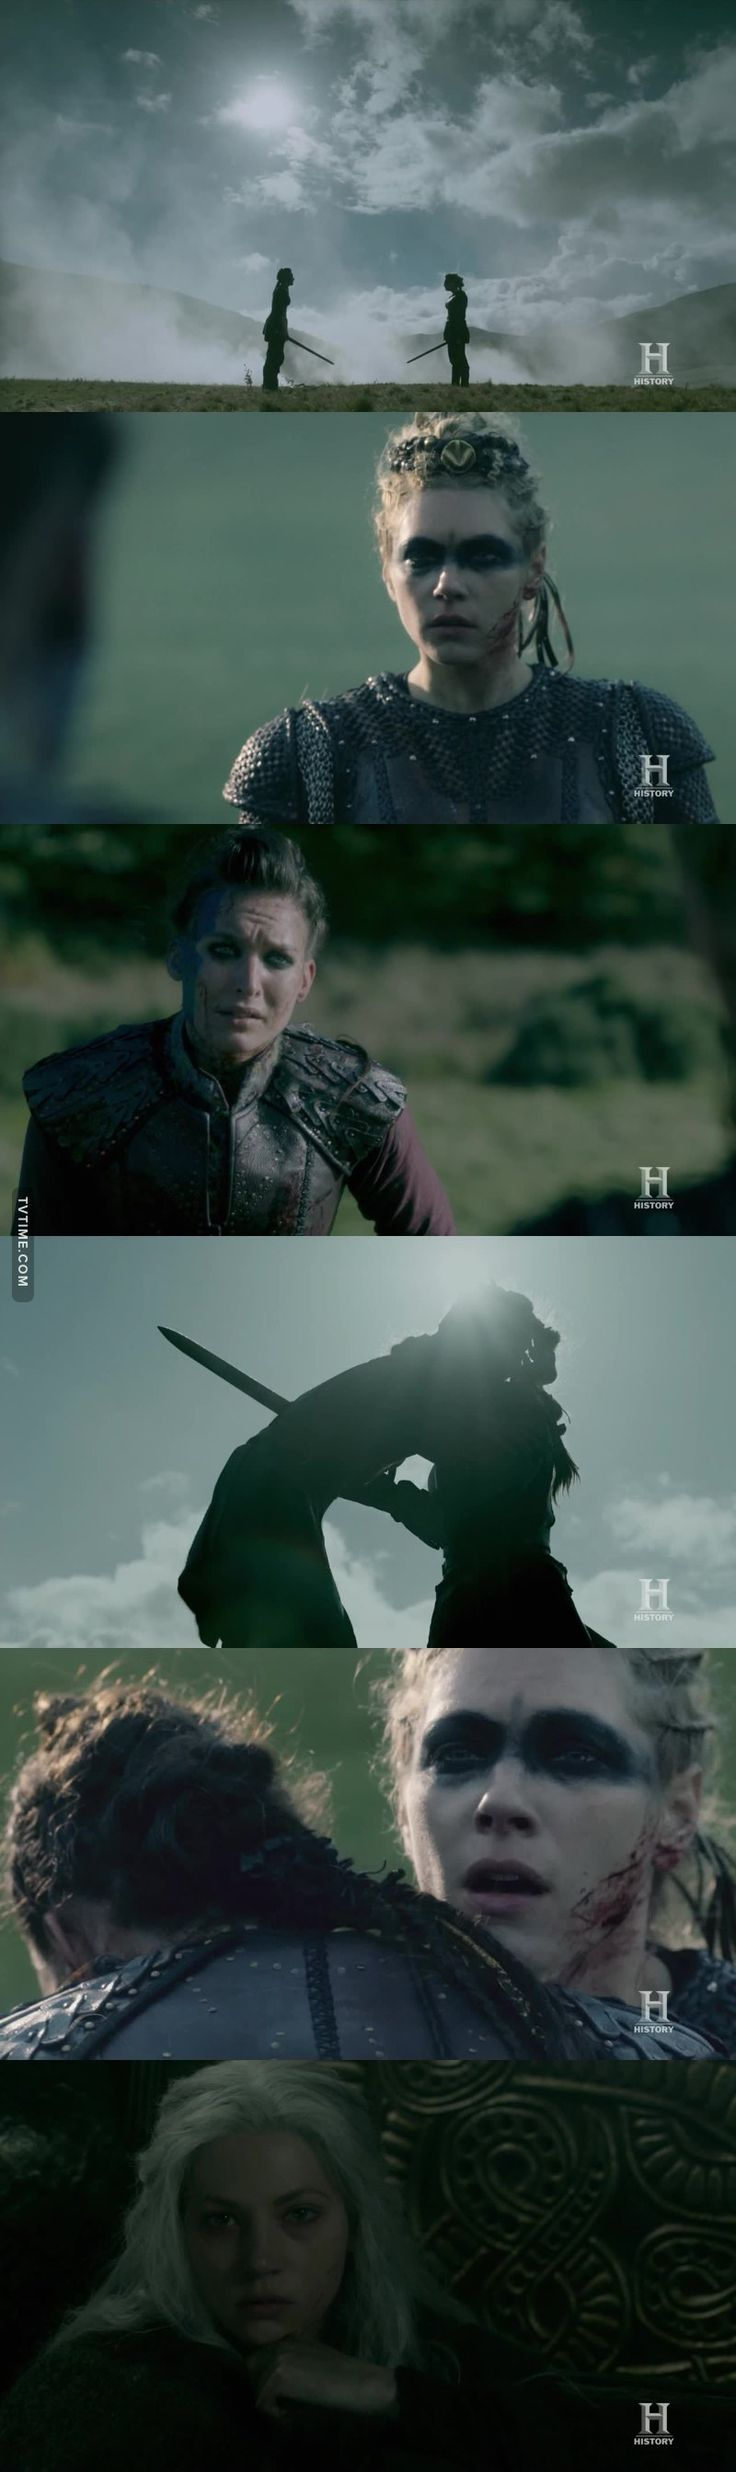 VIKINGS S05E10 This was so beautiful and heartbreaking! Lagertha is the strongest woman ever, but that was too much even for her, she's been broken too many times. She never wanted to kill Astrid, but she never had a choice, Astrid had already decided she wanted to die by the hand of the woman she loved.